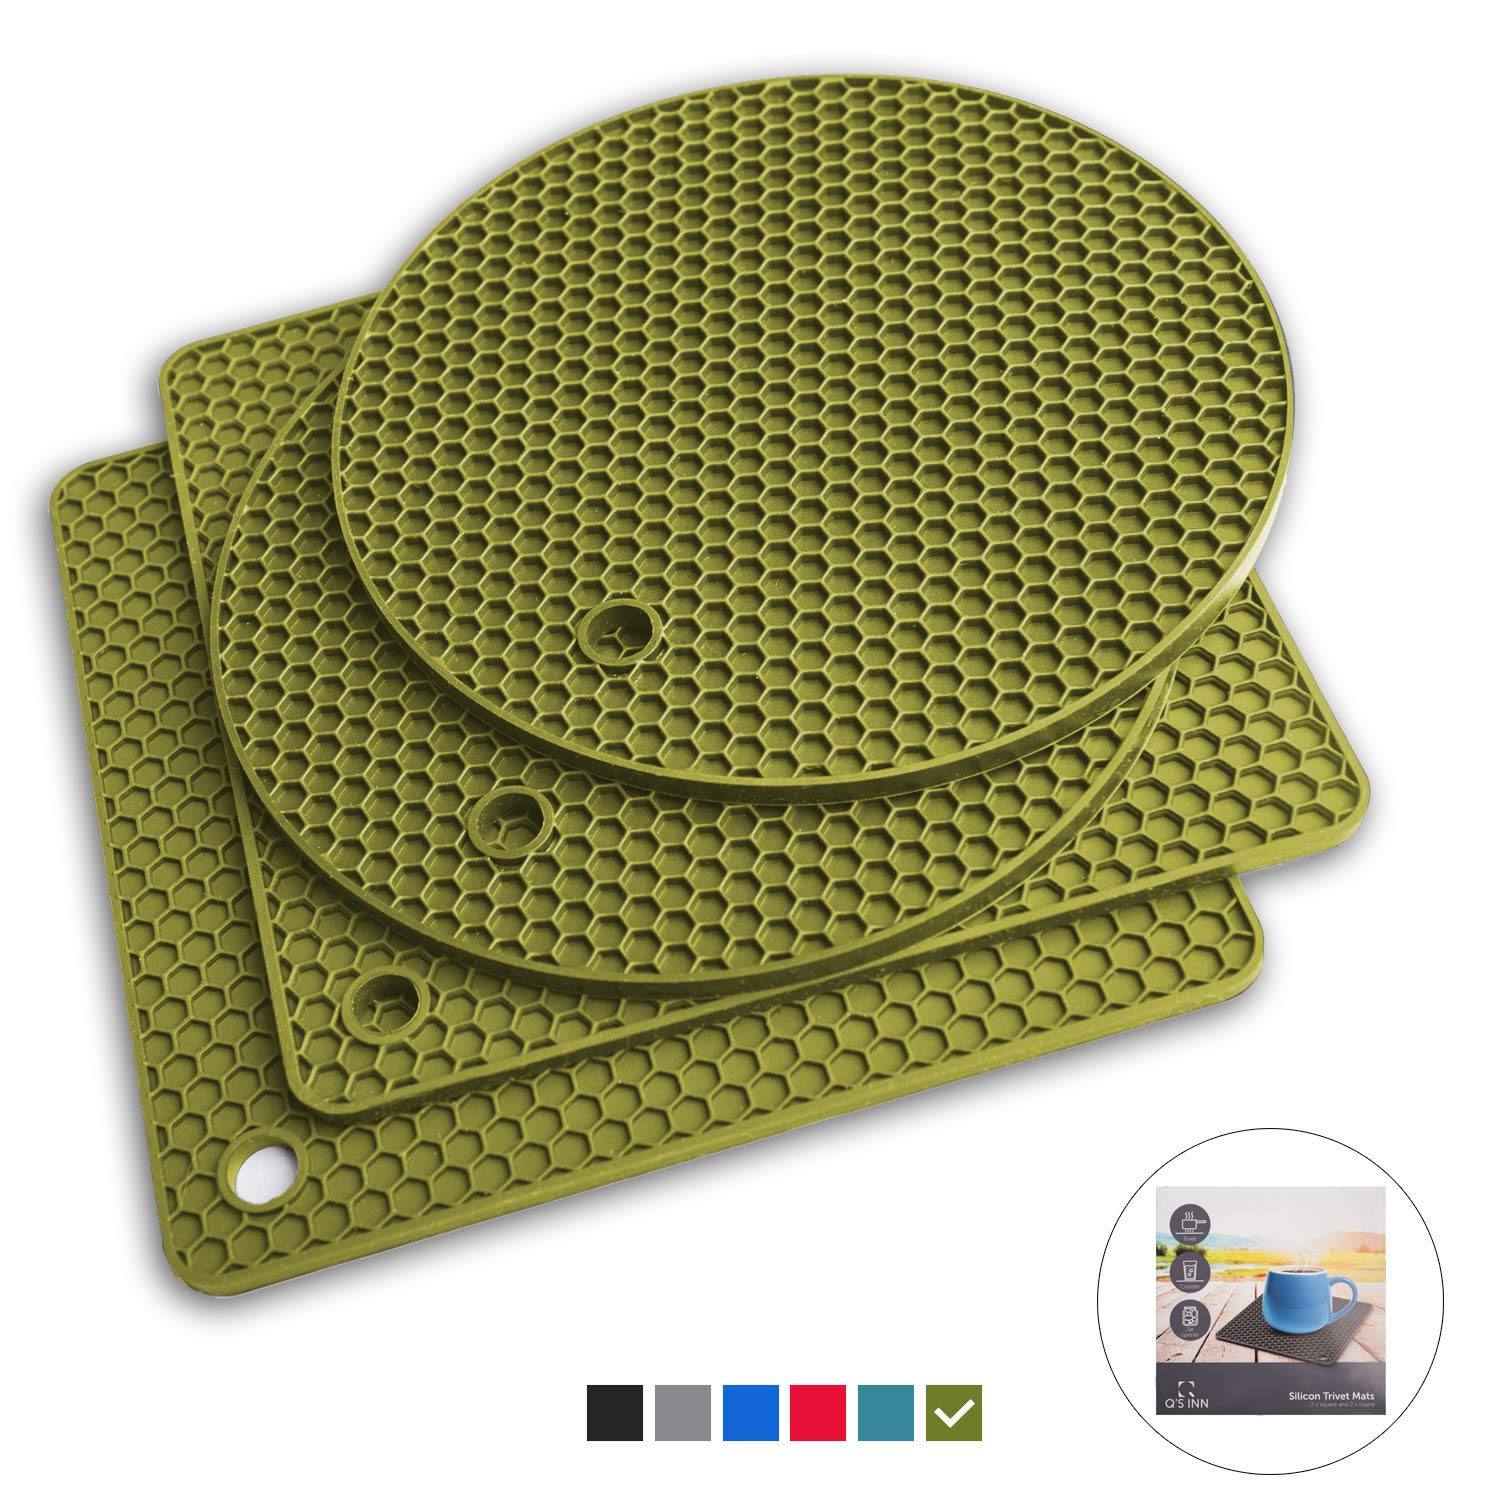 Q's INN Olive Silicone Trivet Mats | Hot Pot Holders | Drying Mat. Our 7 in 1 Multi-Purpose Kitchen Tool is Heat Resistant to 440°F, Non-slip, durable, flexible easy to wash and contains 4 pcs.